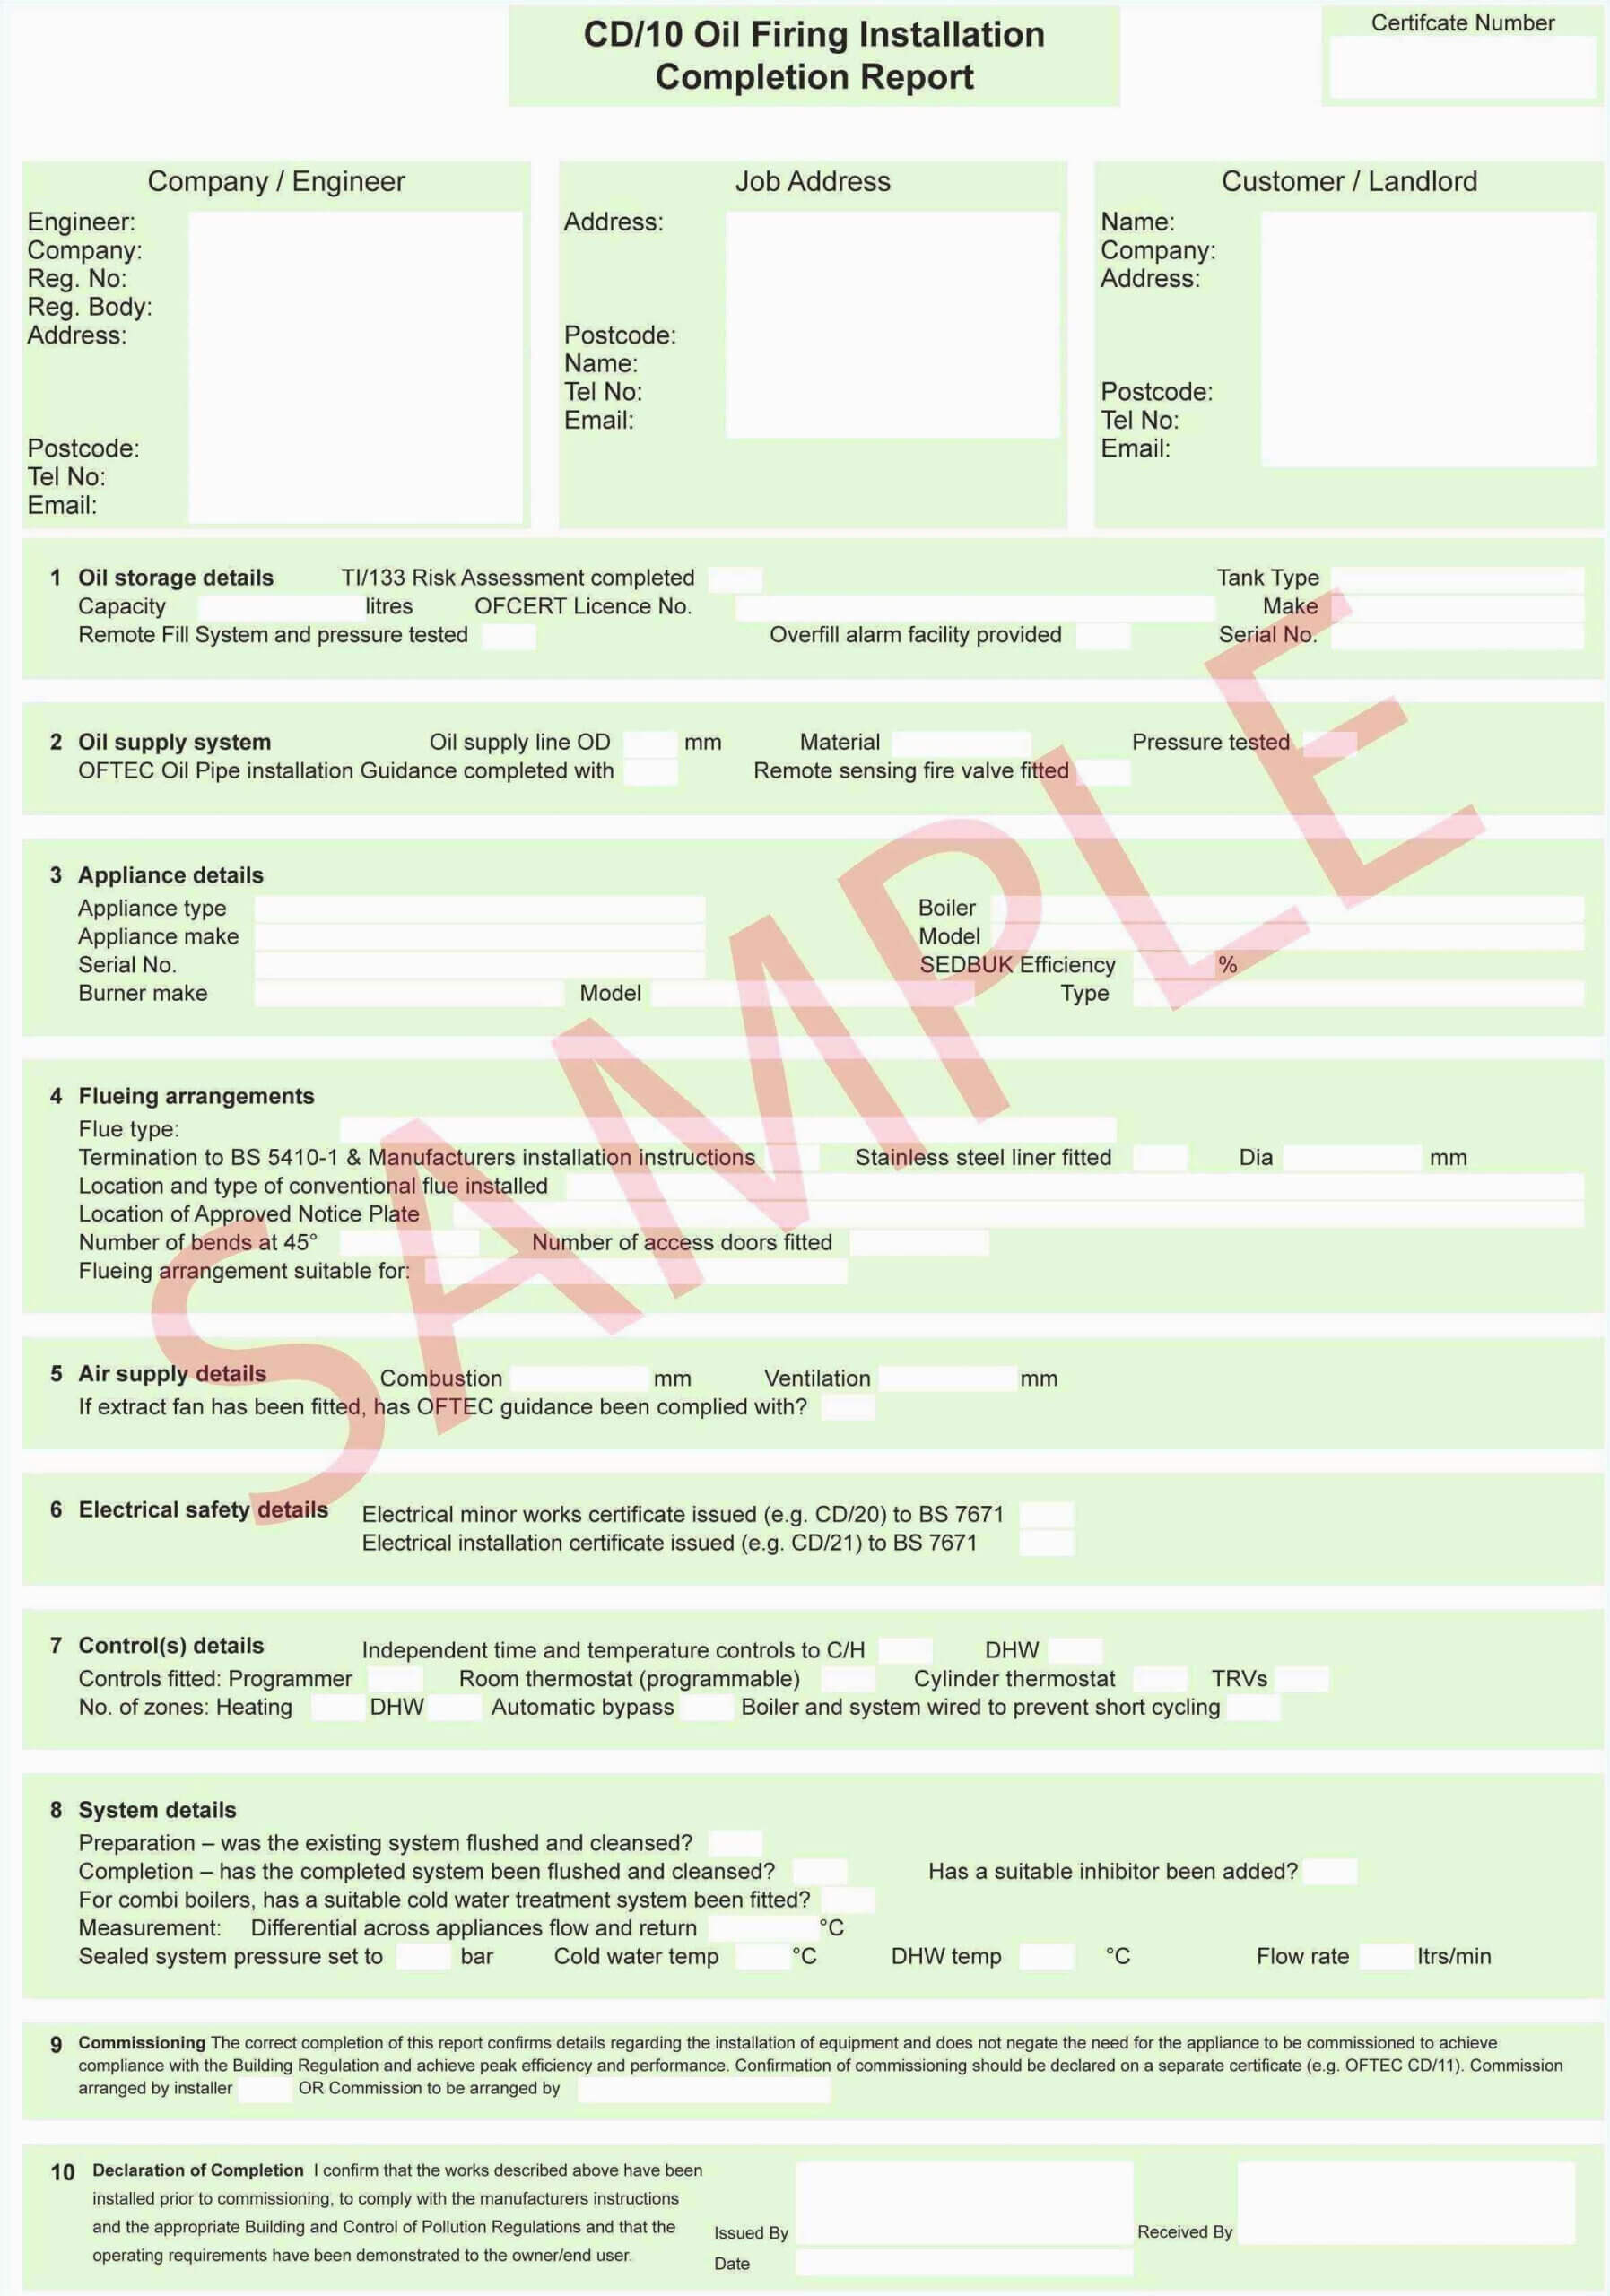 Unique Wbs Chart Template #exceltemplate #xls #xlstemplate For No Certificate Templates Could Be Found